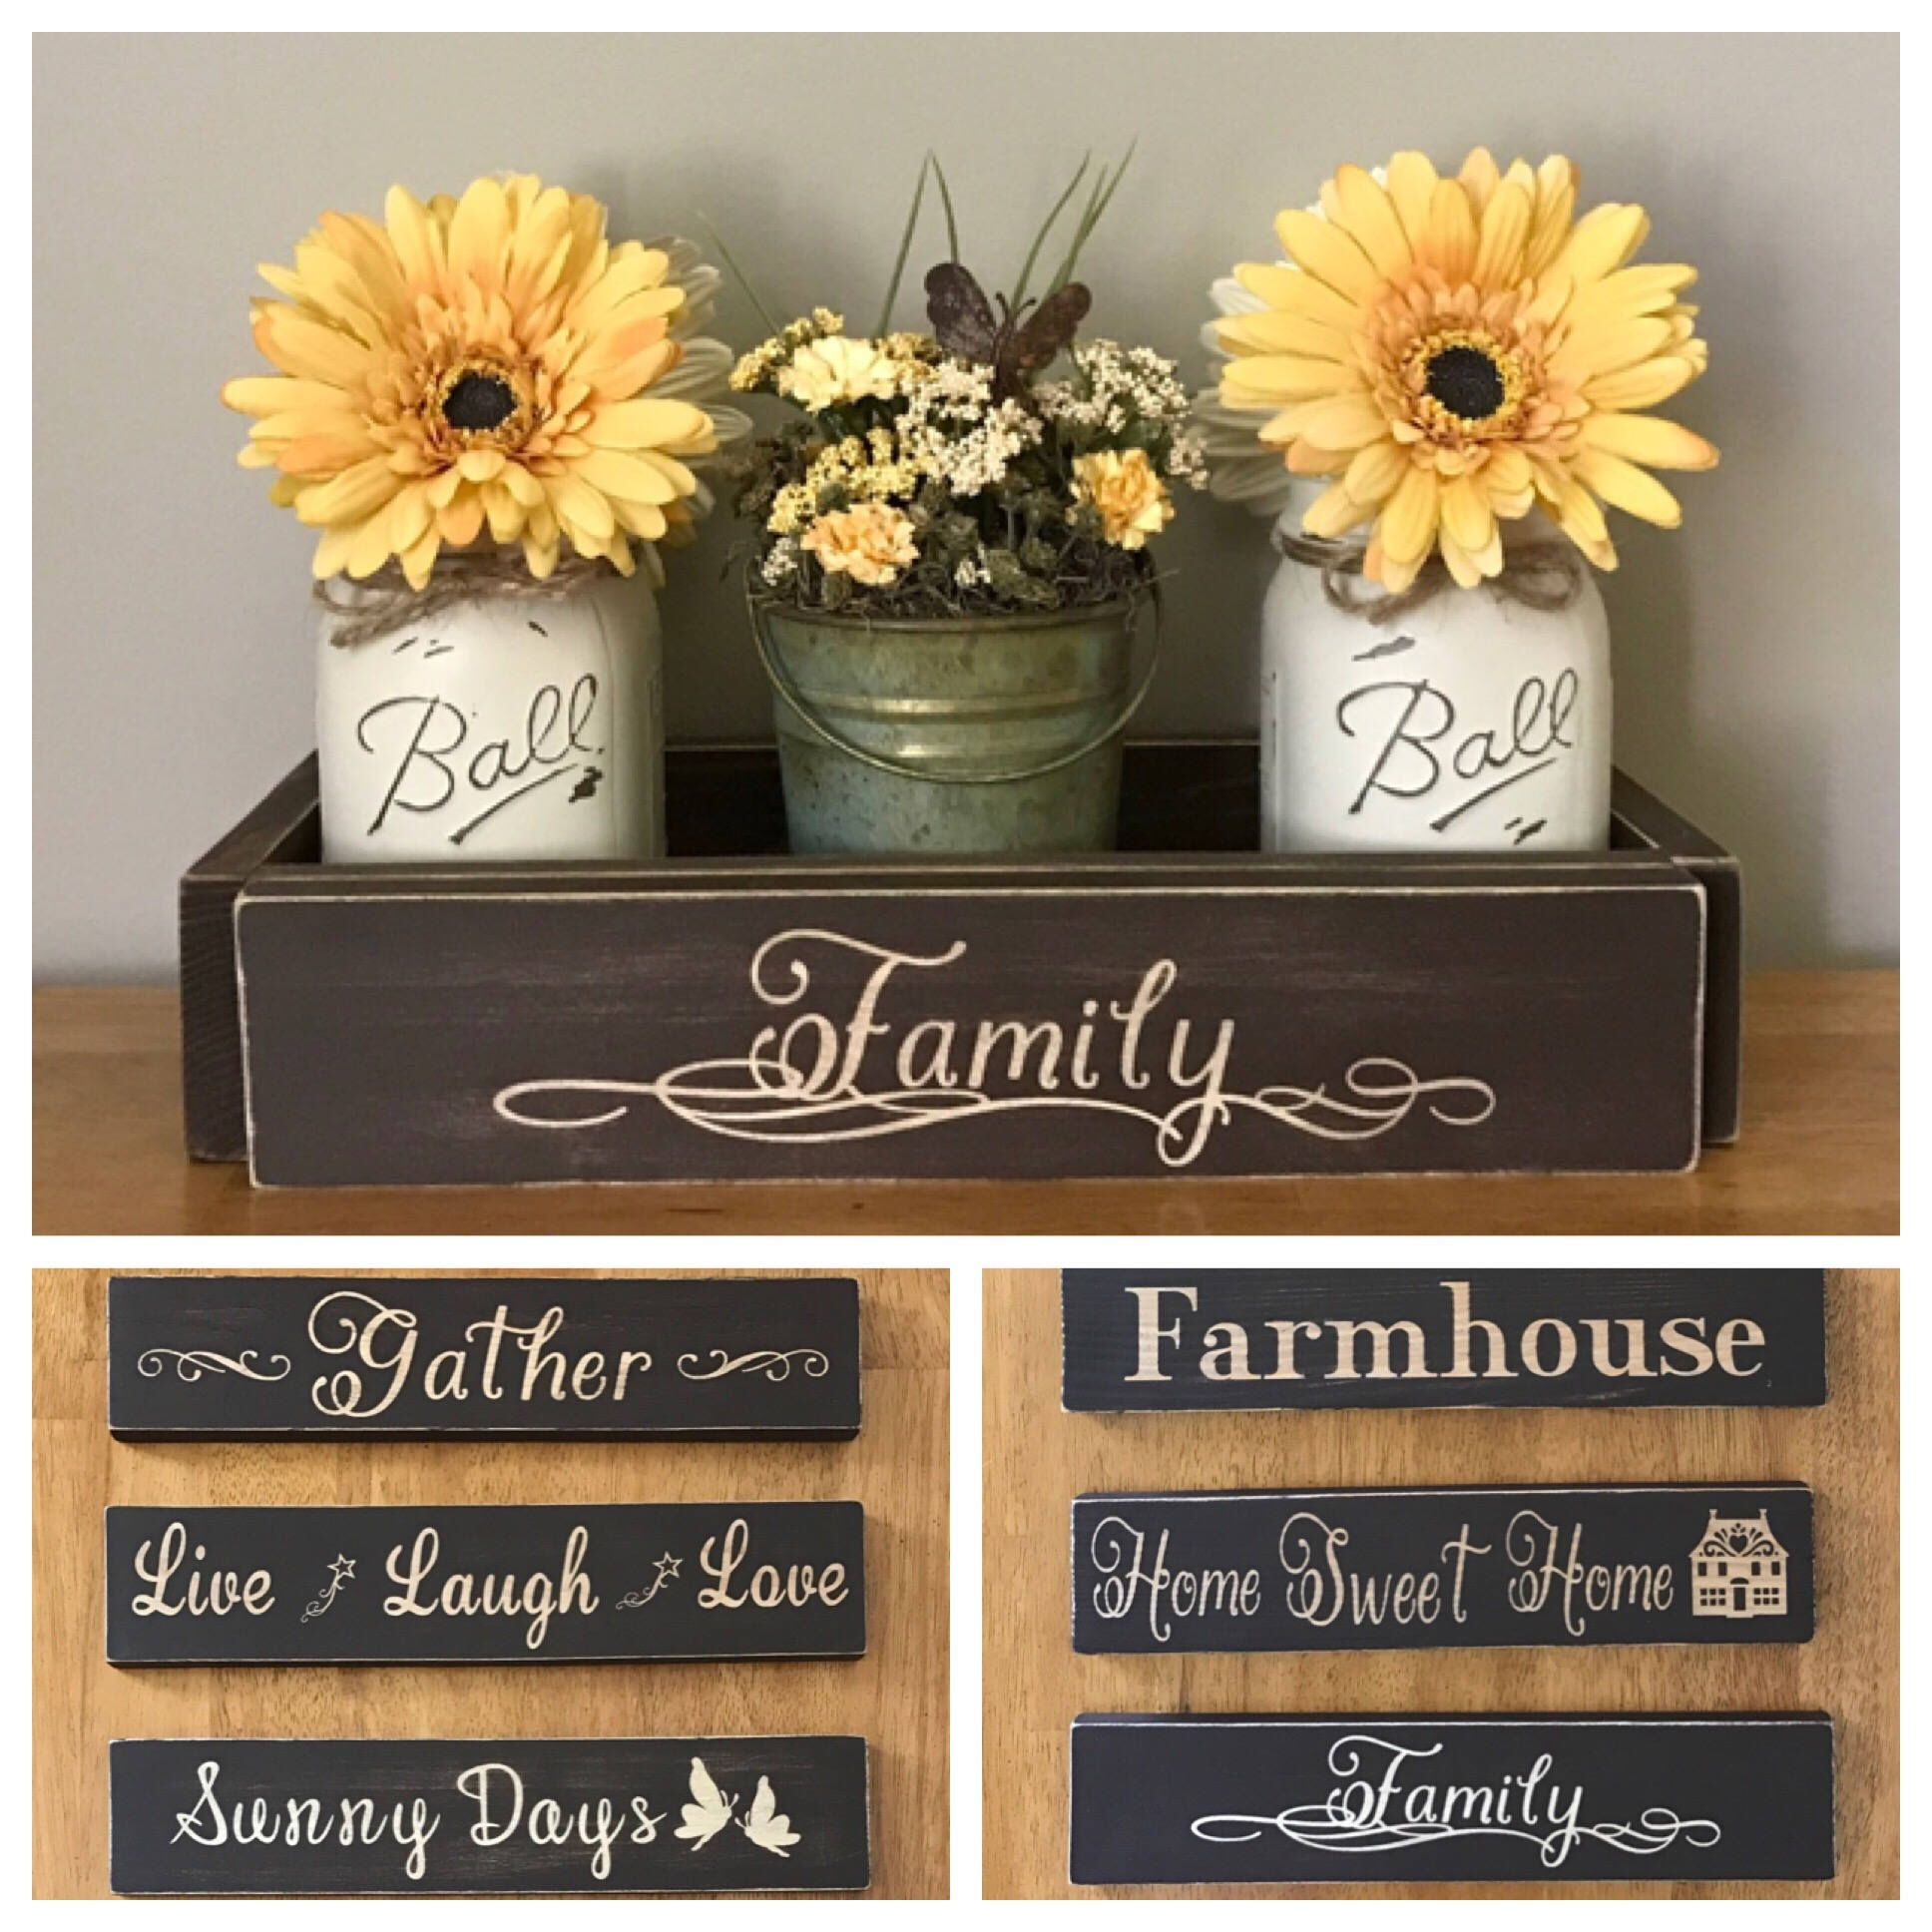 A Personal Favorite From My Etsy Shop Https Www Etsy Com Listing 526072383 Dining Tab Dining Table Centerpiece Mason Jar Centerpieces Sunflower Kitchen Decor